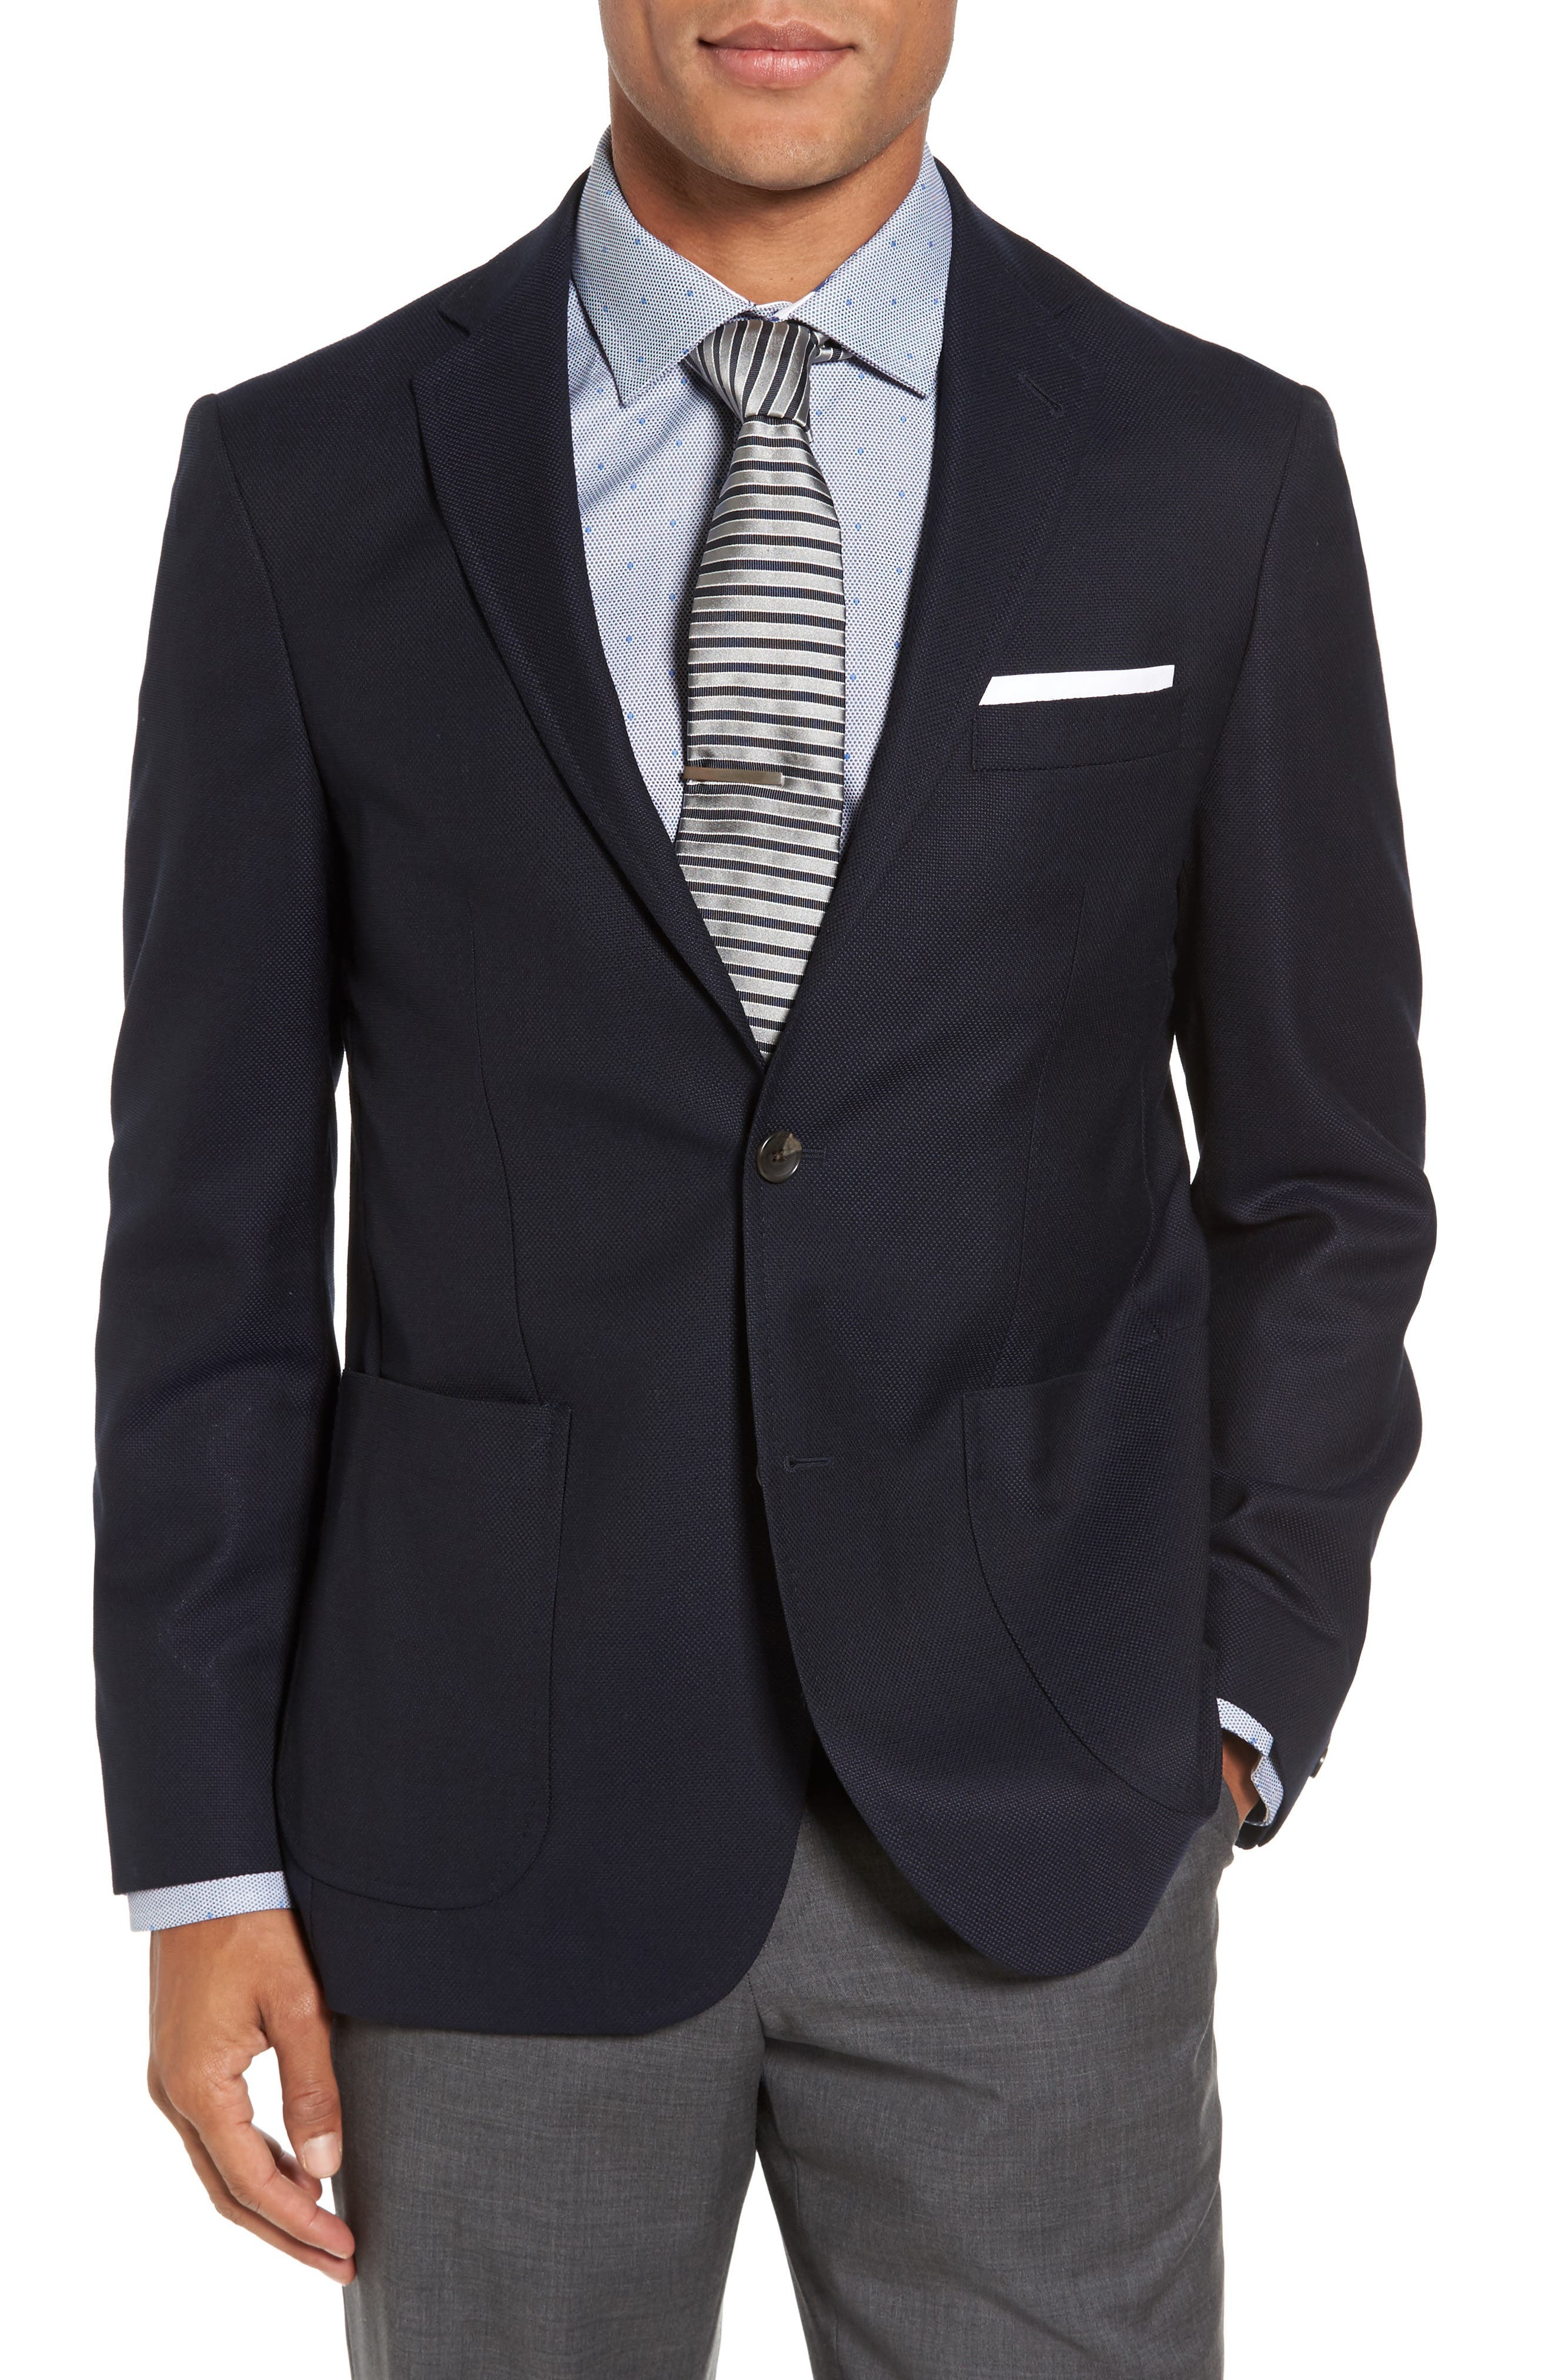 Vantage Trim Fit Wool Blazer,                             Main thumbnail 1, color,                             Navy Hopsack